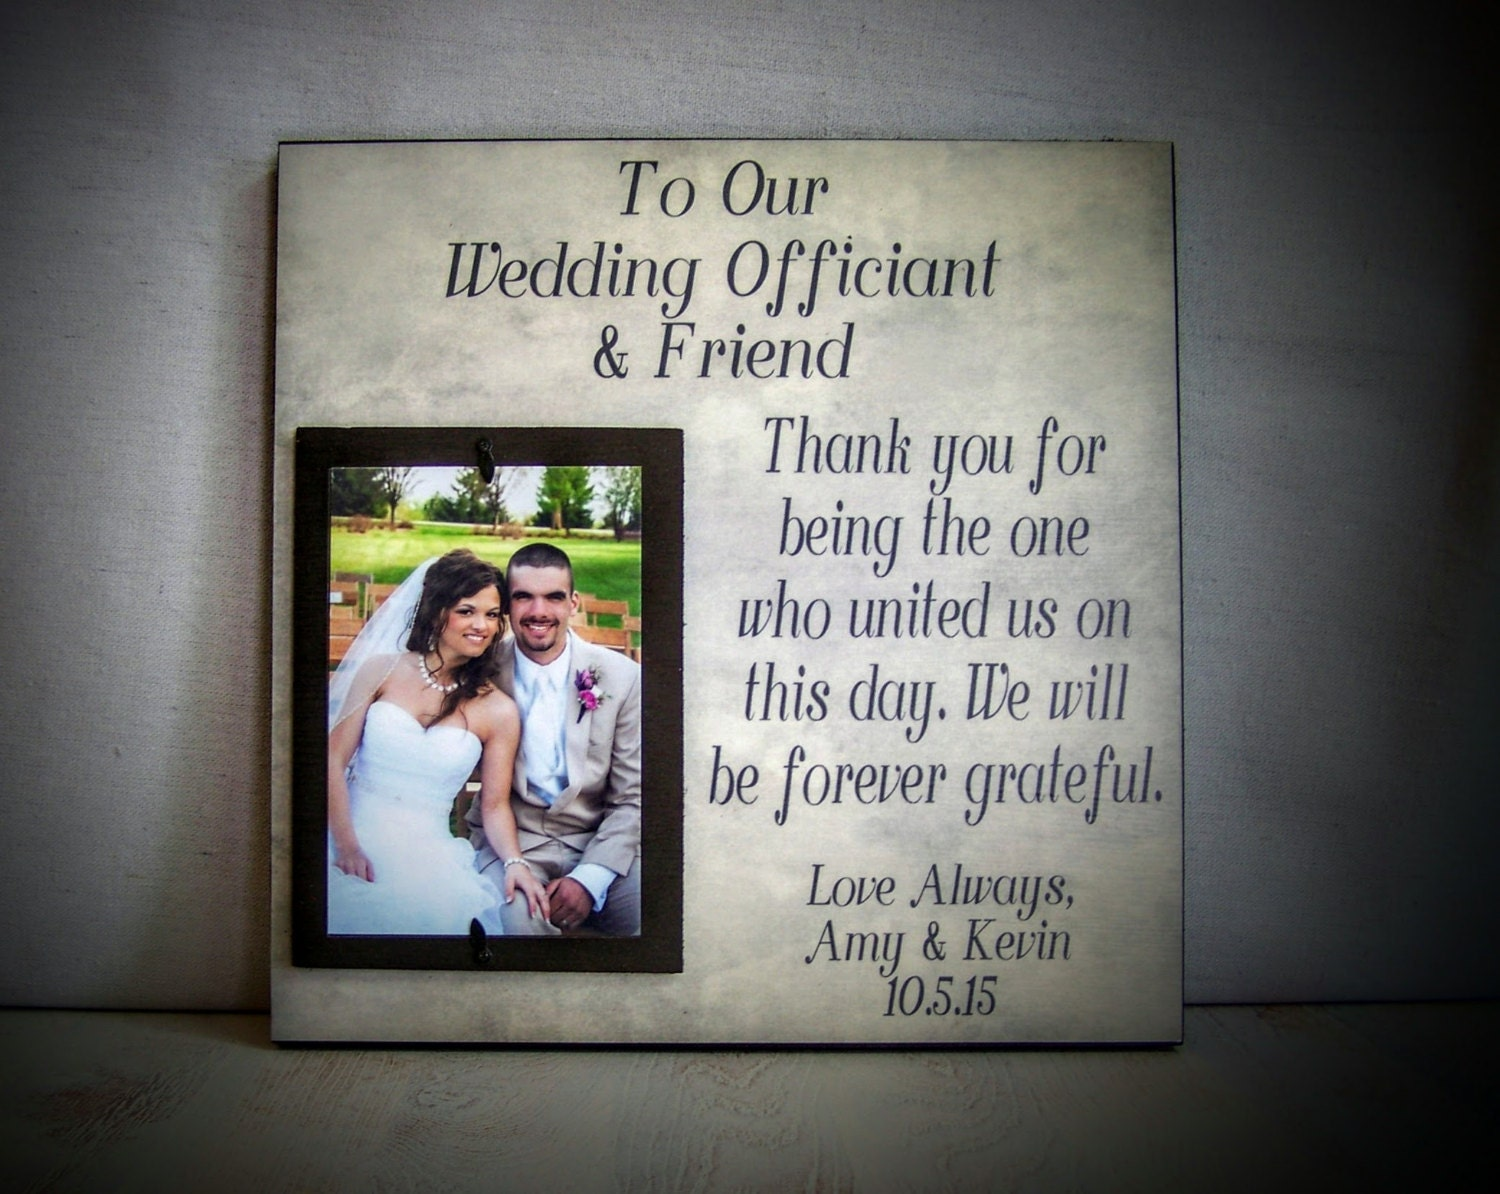 Perfect Wedding Gift For Sister: Wedding Officiant Gift : Perfect For The Friend & Wedding